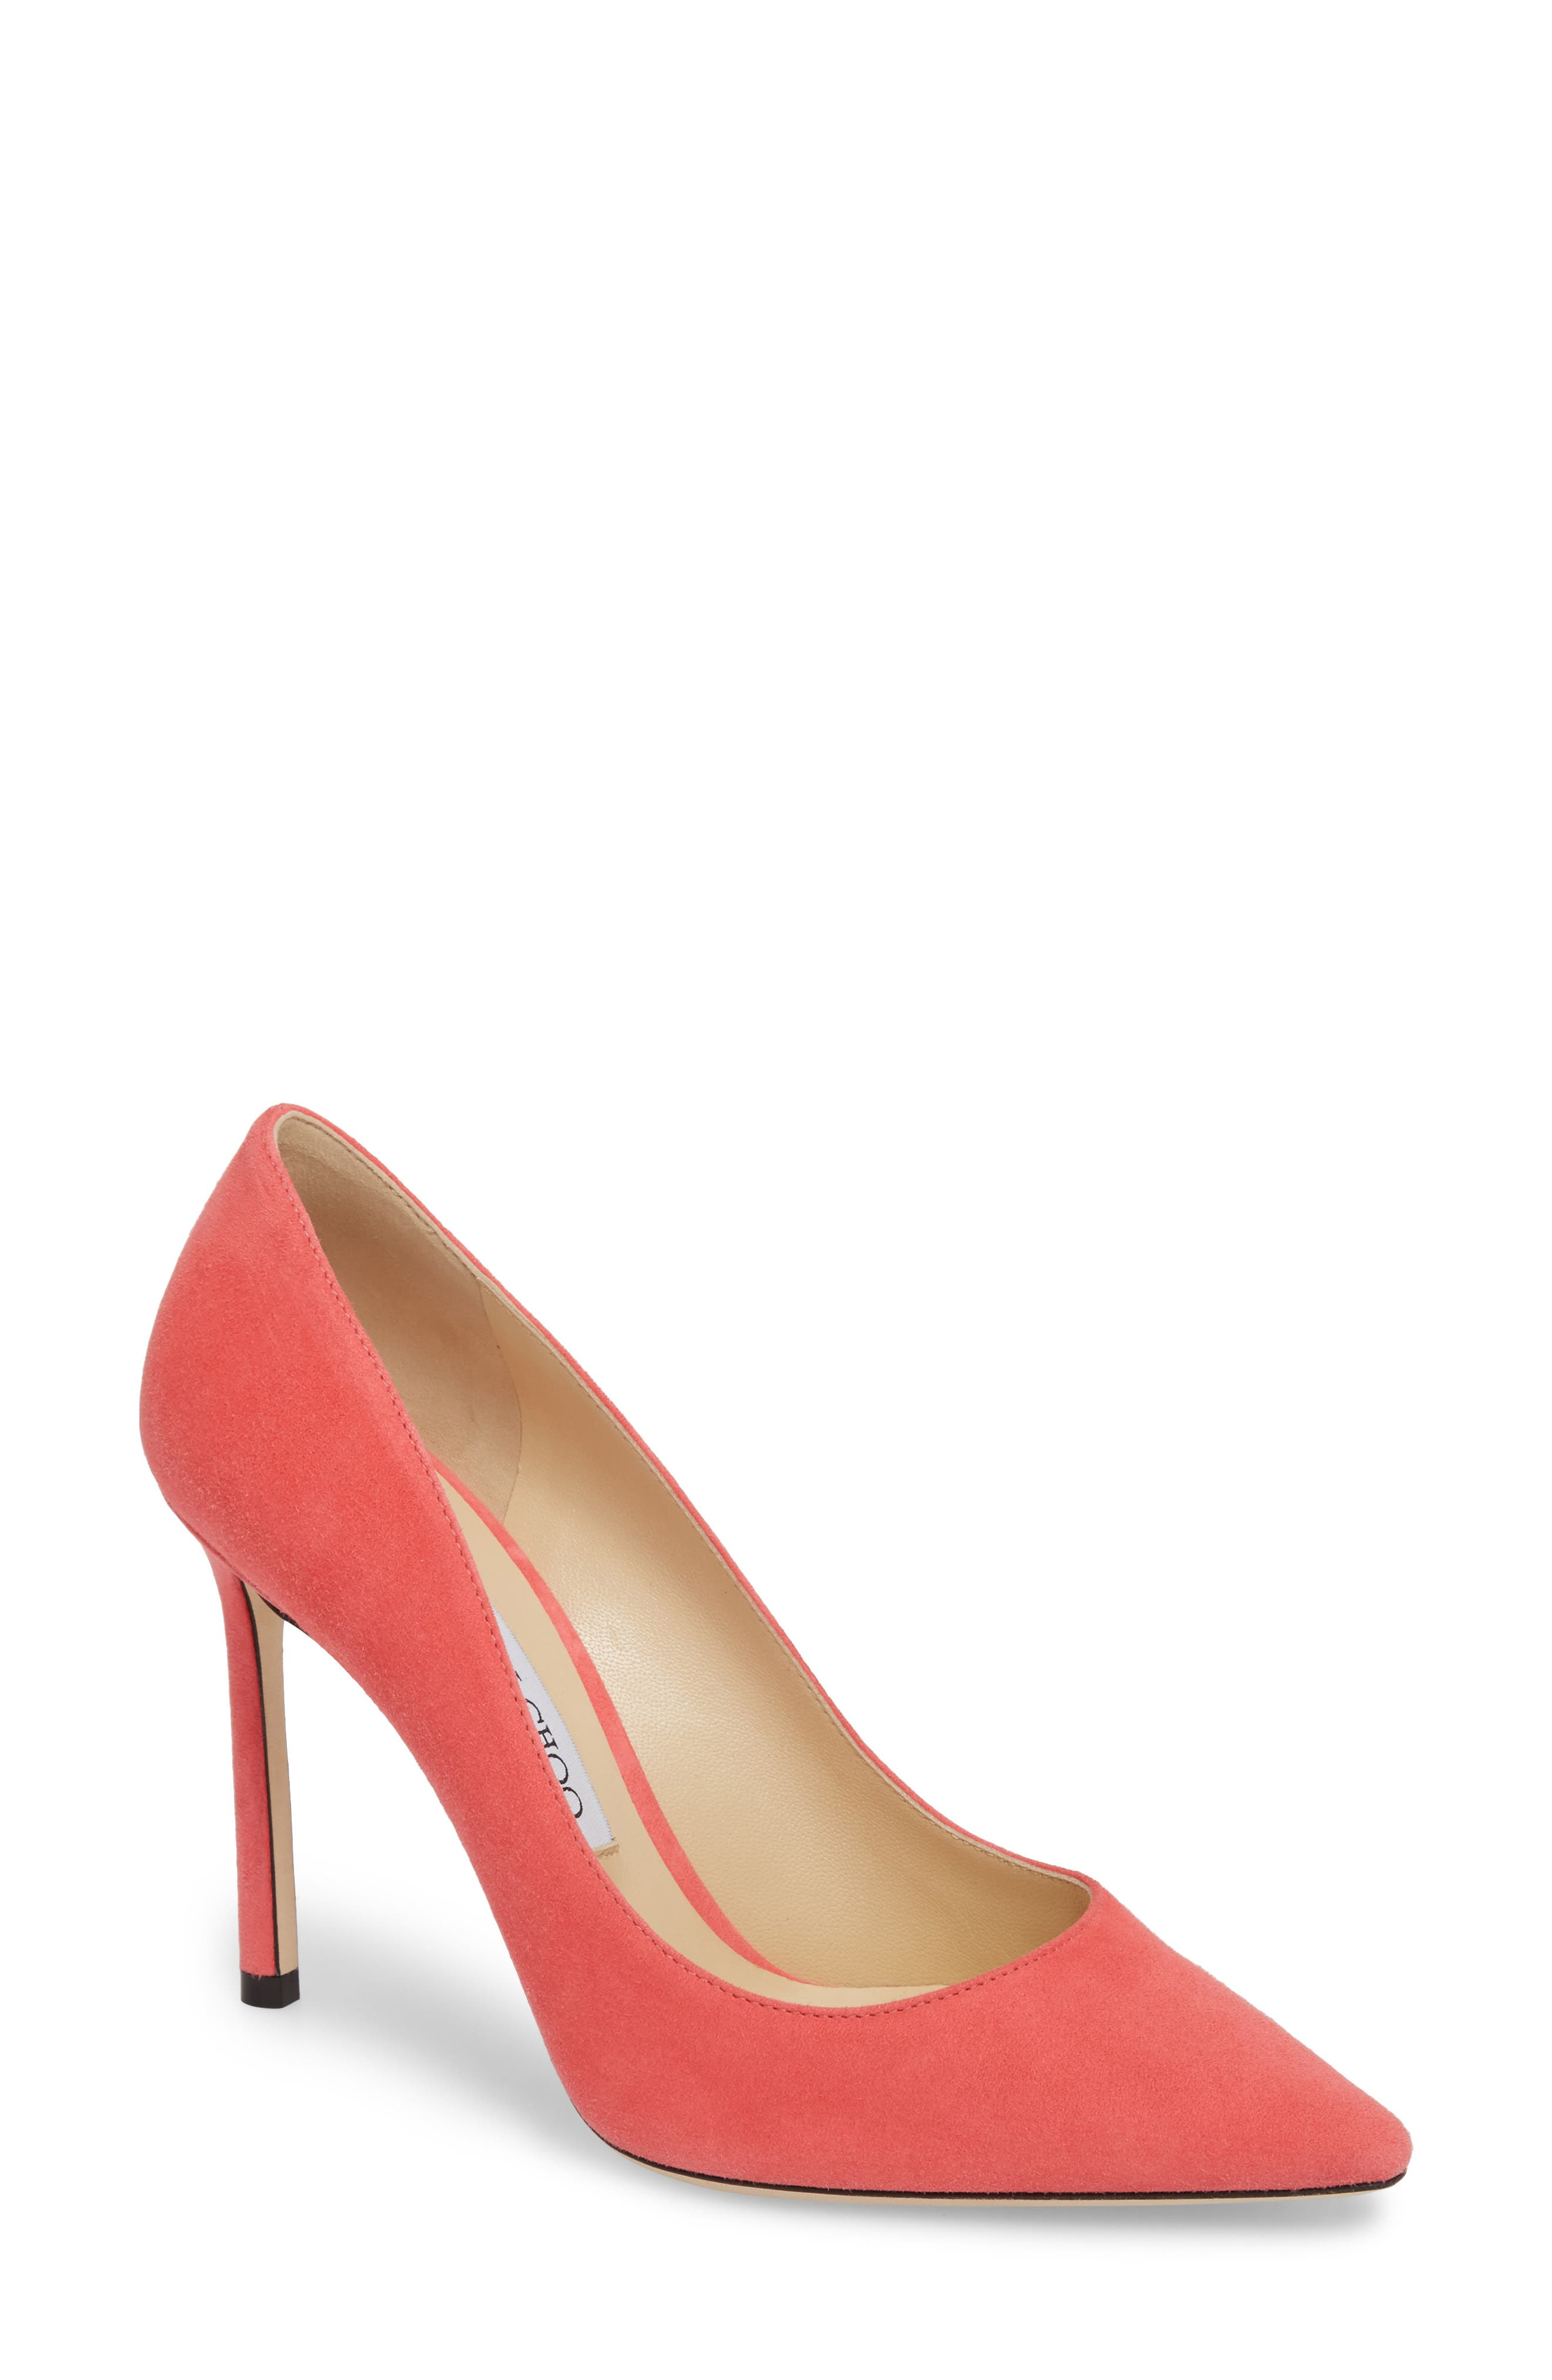 'Romy' Pointy Toe Pump,                         Main,                         color, Flamingo Pink